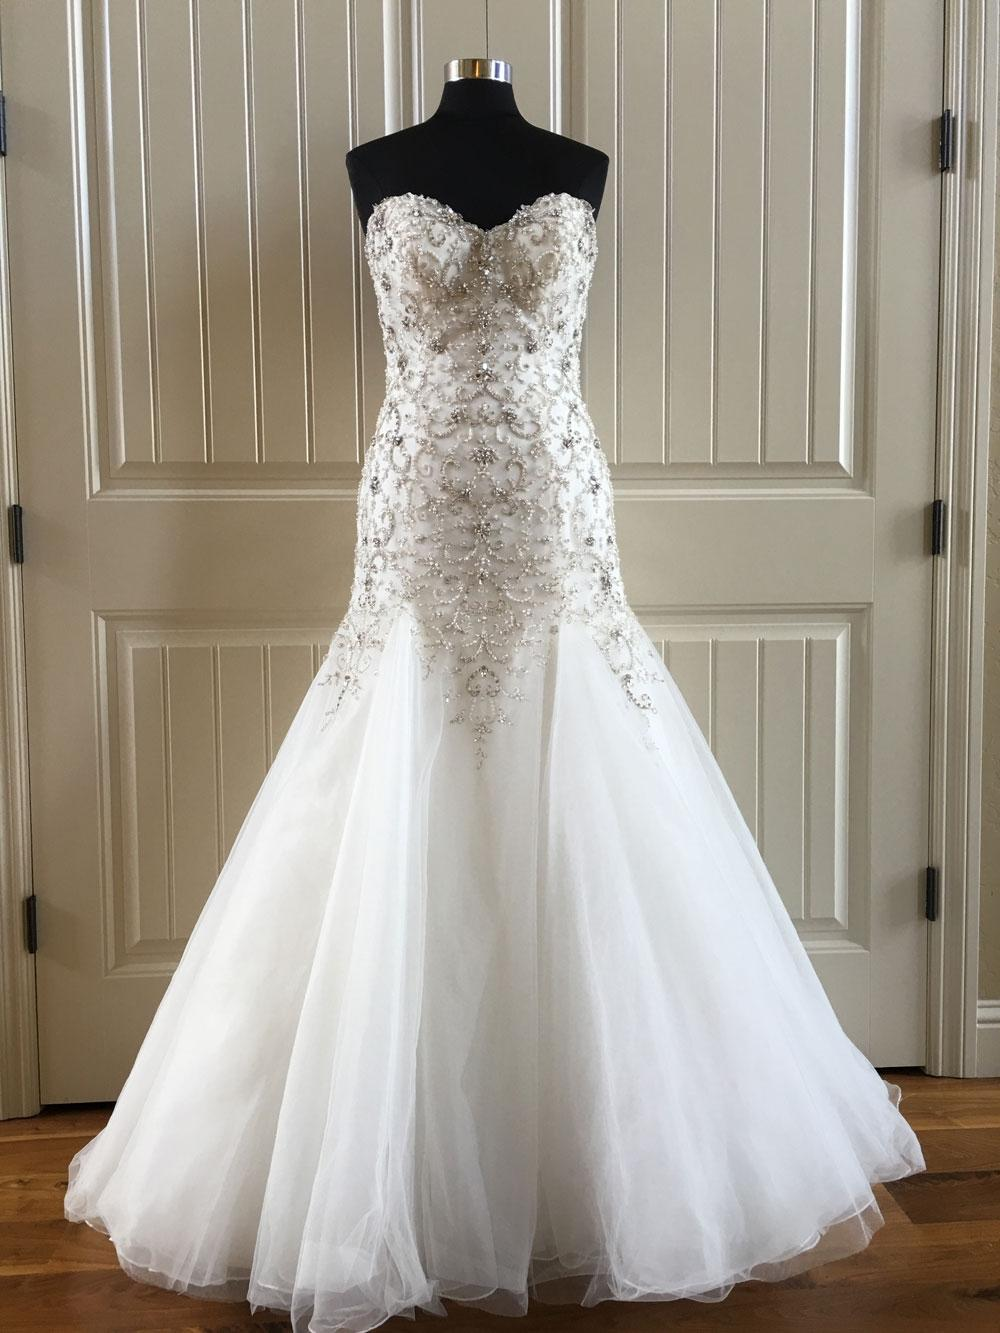 Maggie Sottero Ivory Pewter Accent Tulle Beaded Sasha